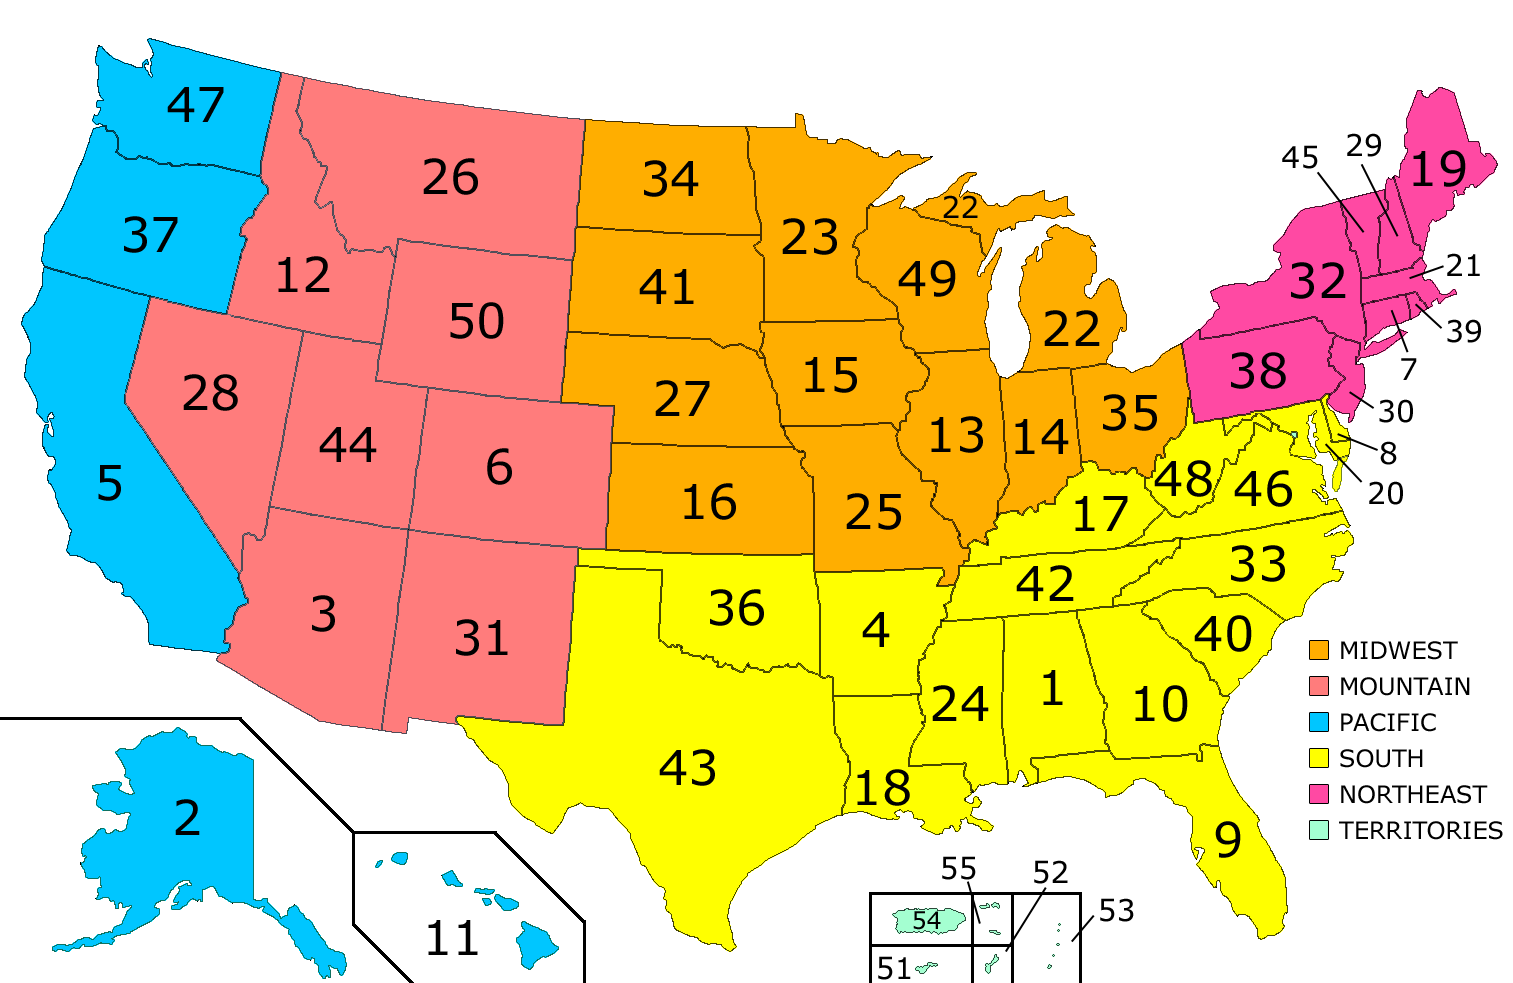 File:United States Administrative Divisions.png - Wikimedia Commons